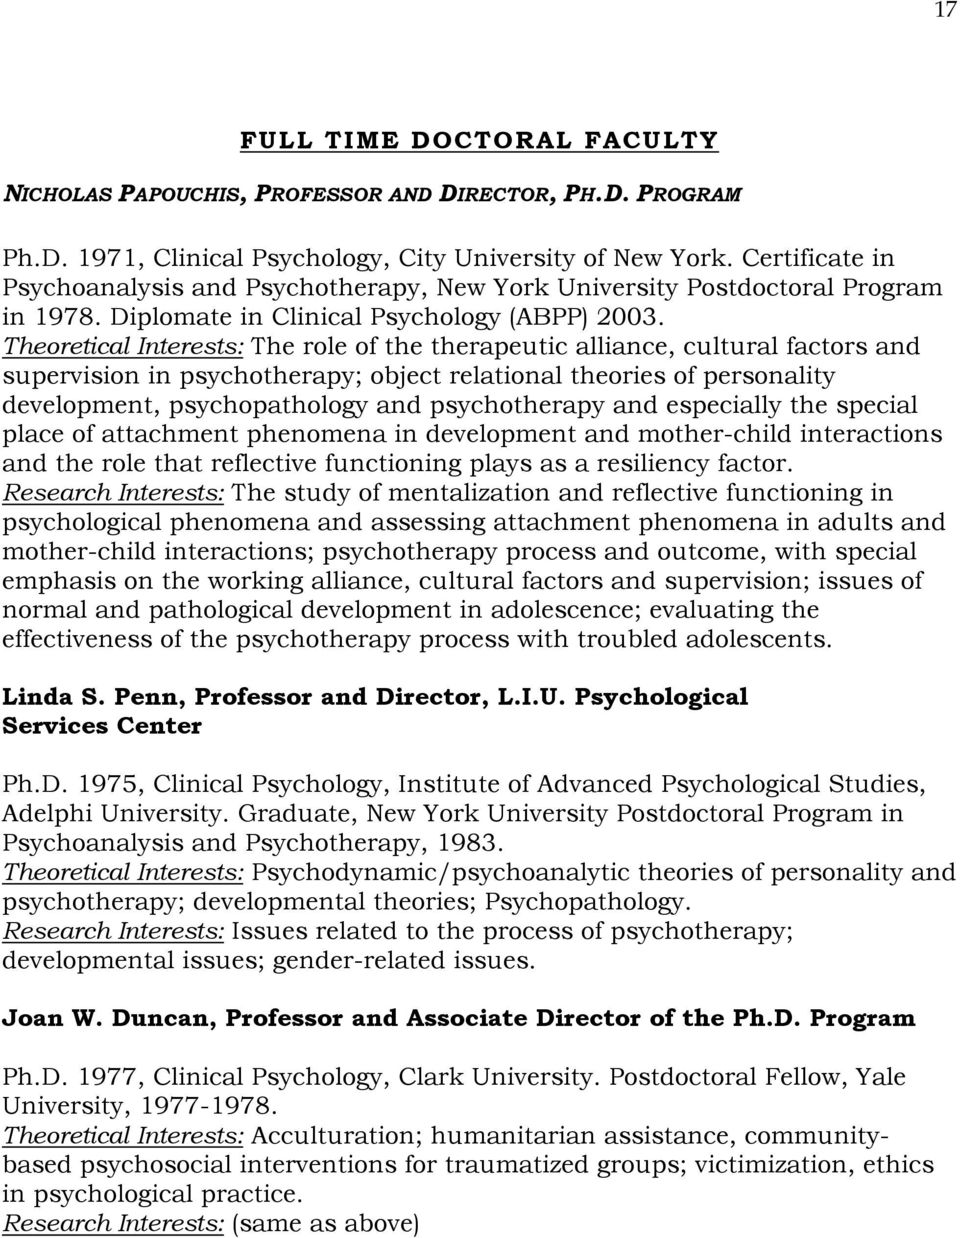 Theoretical Interests: The role of the therapeutic alliance, cultural factors and supervision in psychotherapy; object relational theories of personality development, psychopathology and